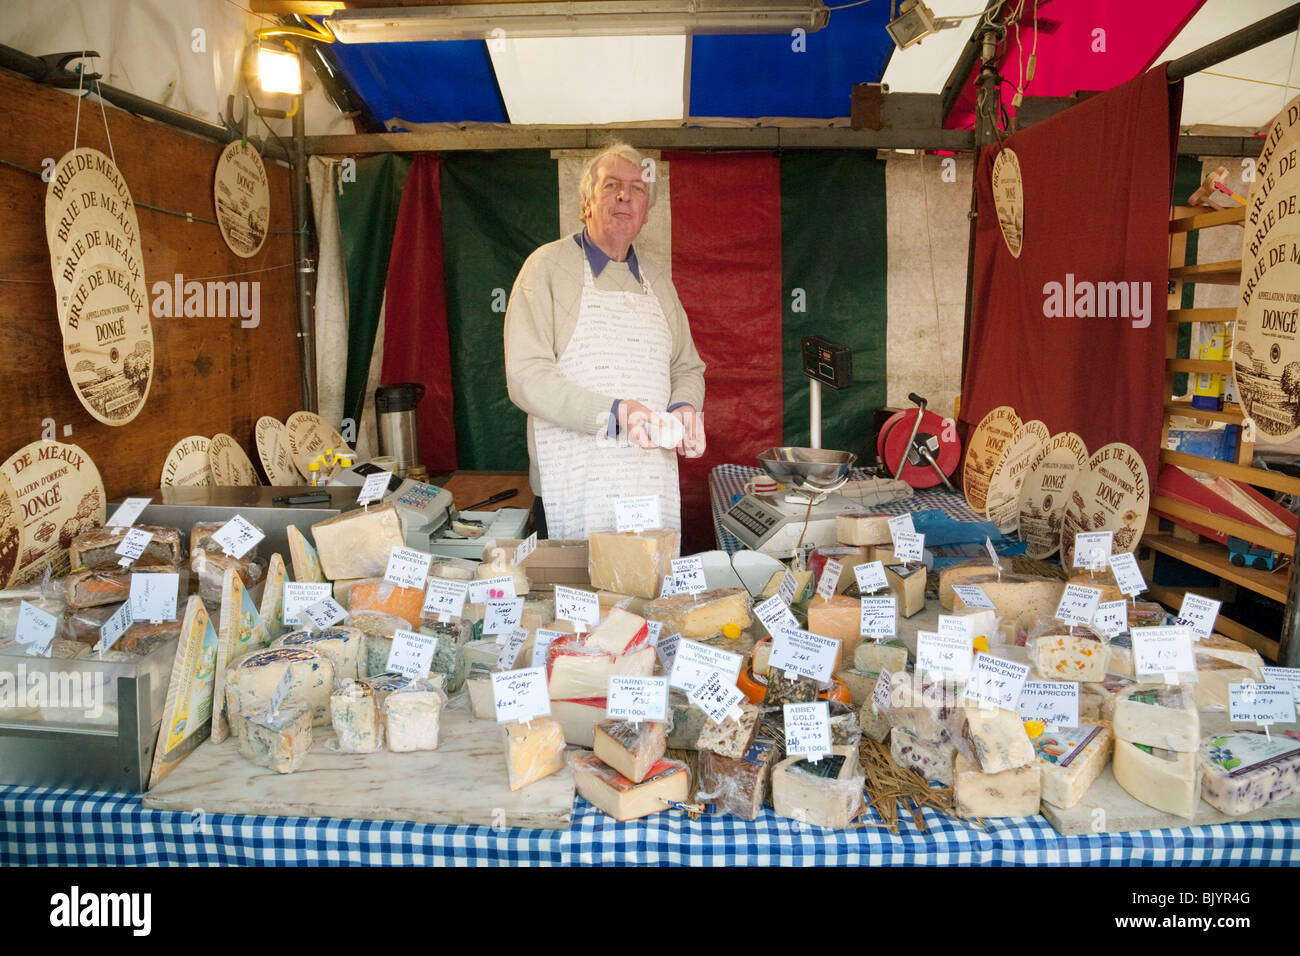 The Cheese stall, the market, Market Square, Cambridge, UK - Stock Image